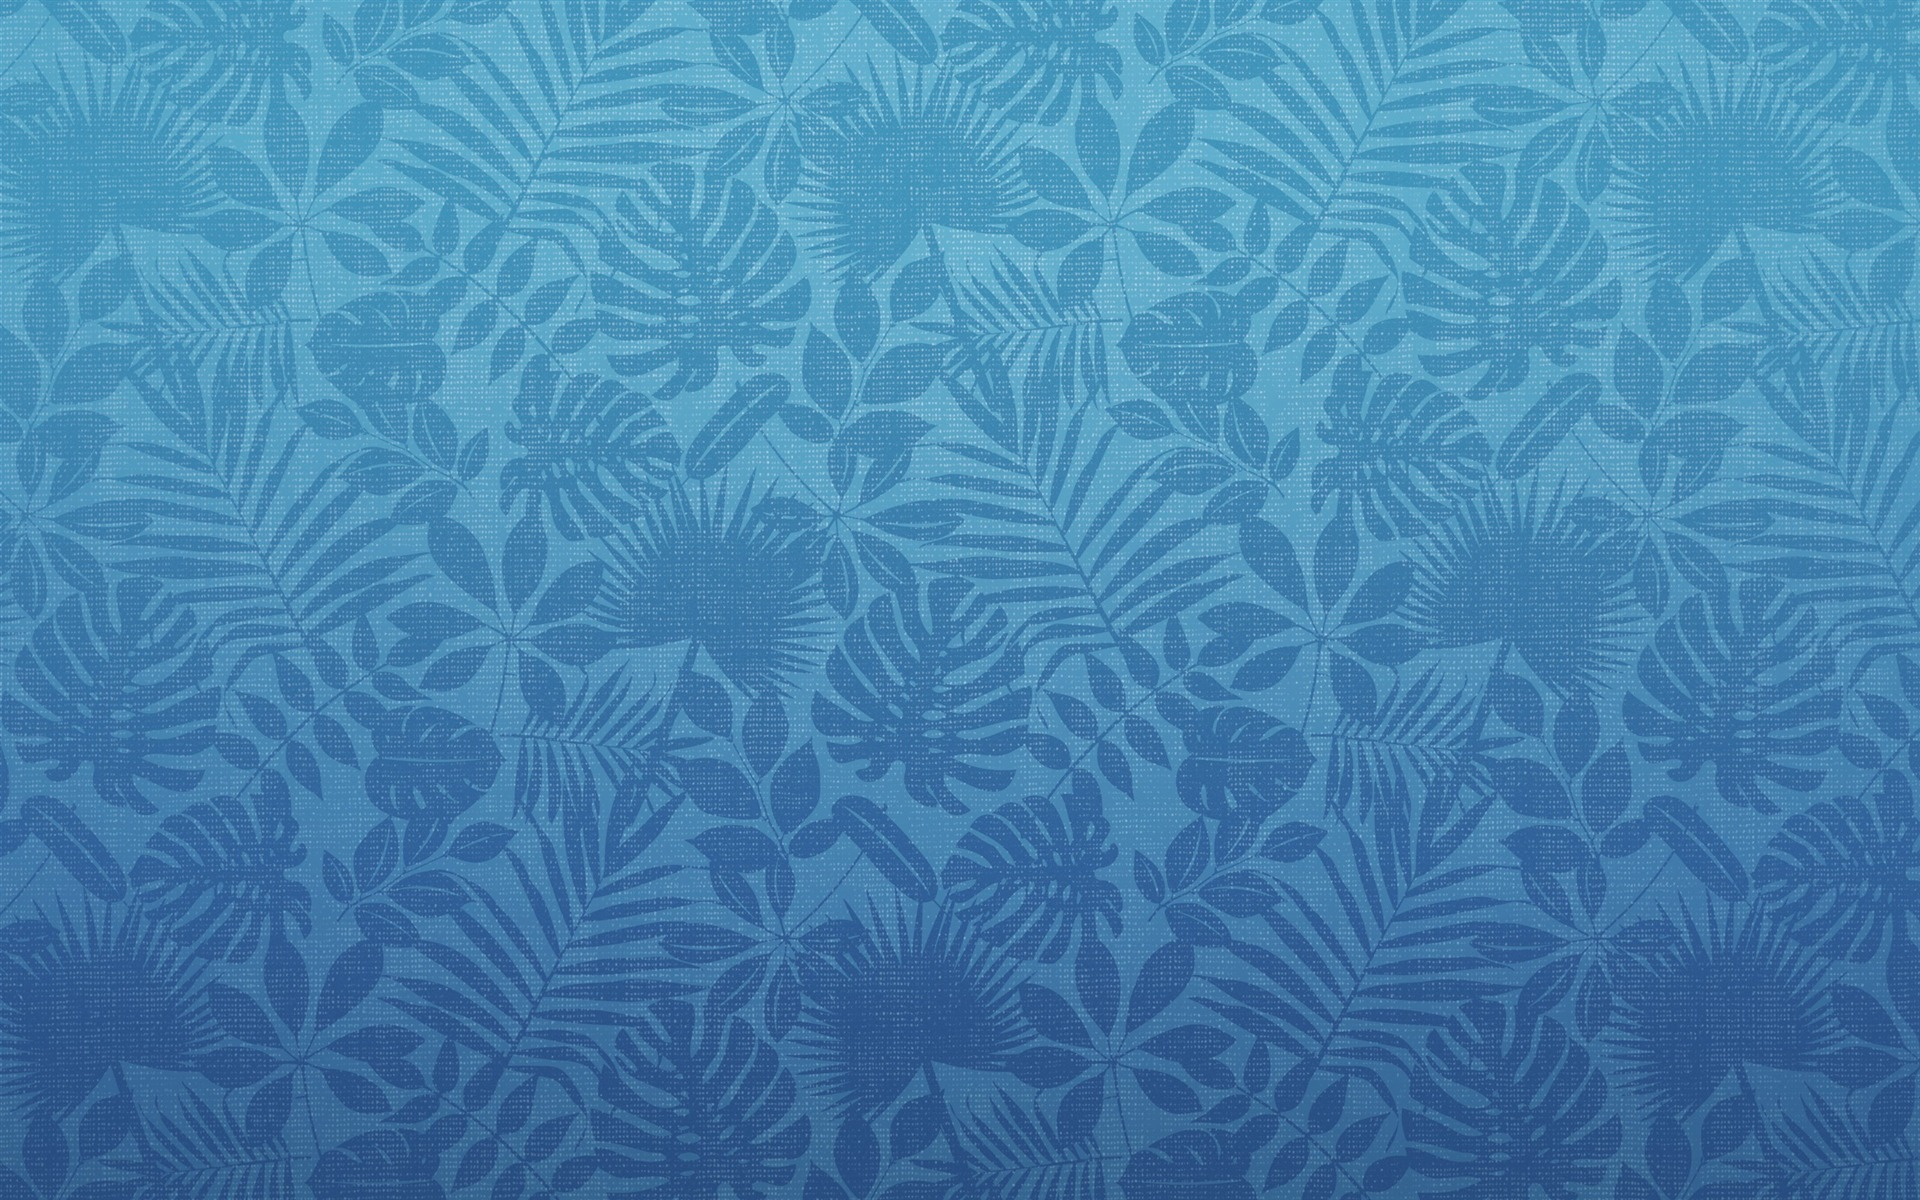 Blue Hawaiian Printing Mac OS Wallpaper  1920x1200